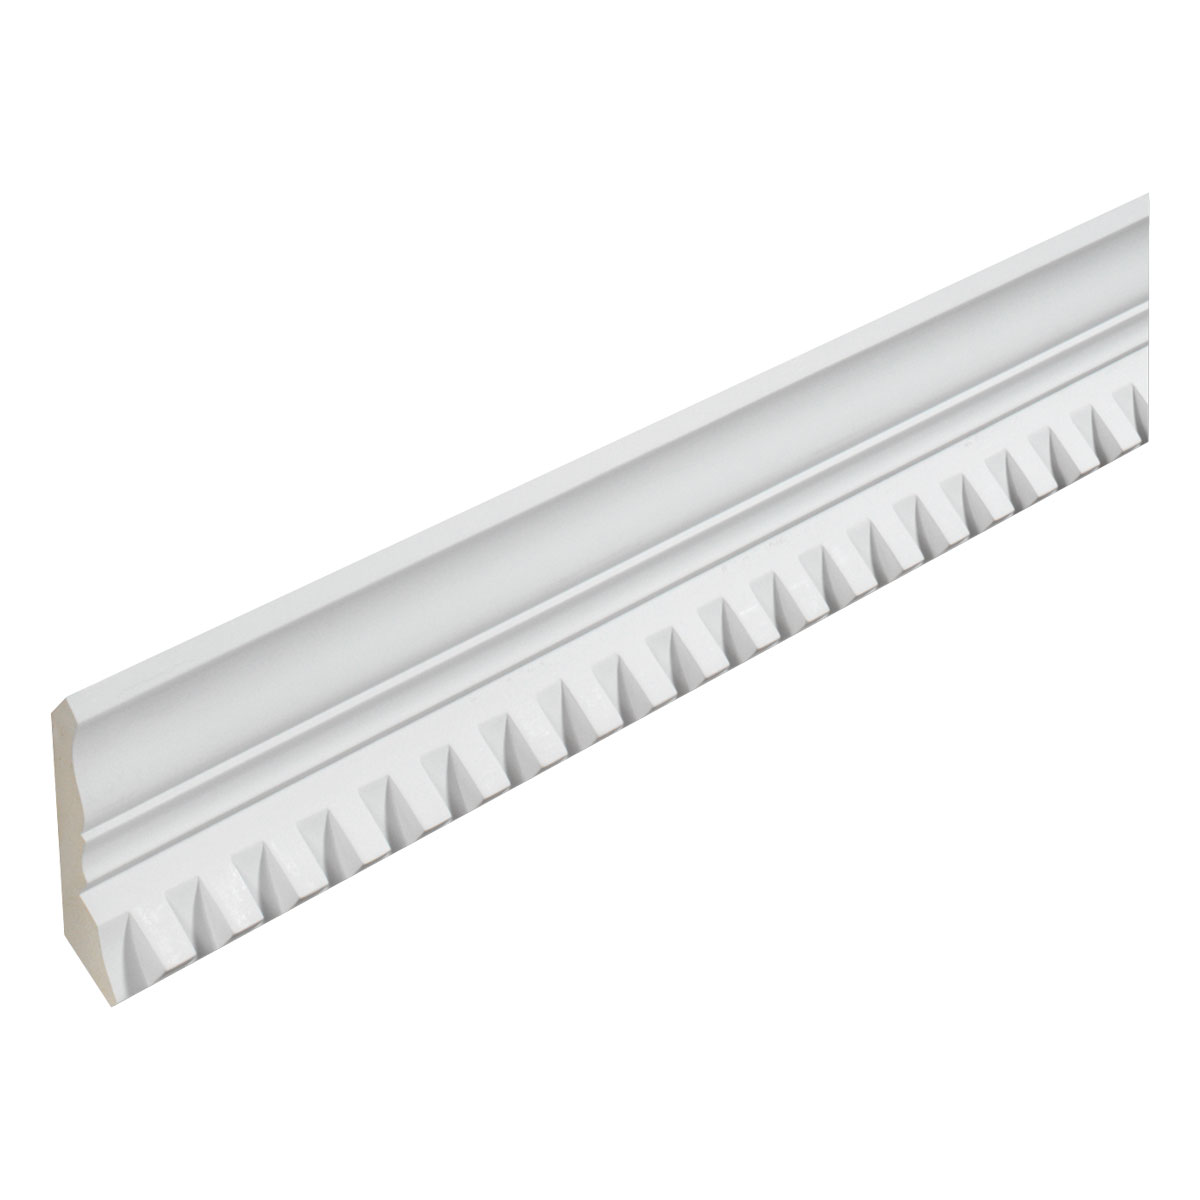 Fypon ltd mld404 16 3 3 4 inch h x 3 3 4 inch t s x 2 1 2 for Fypon crown molding trim